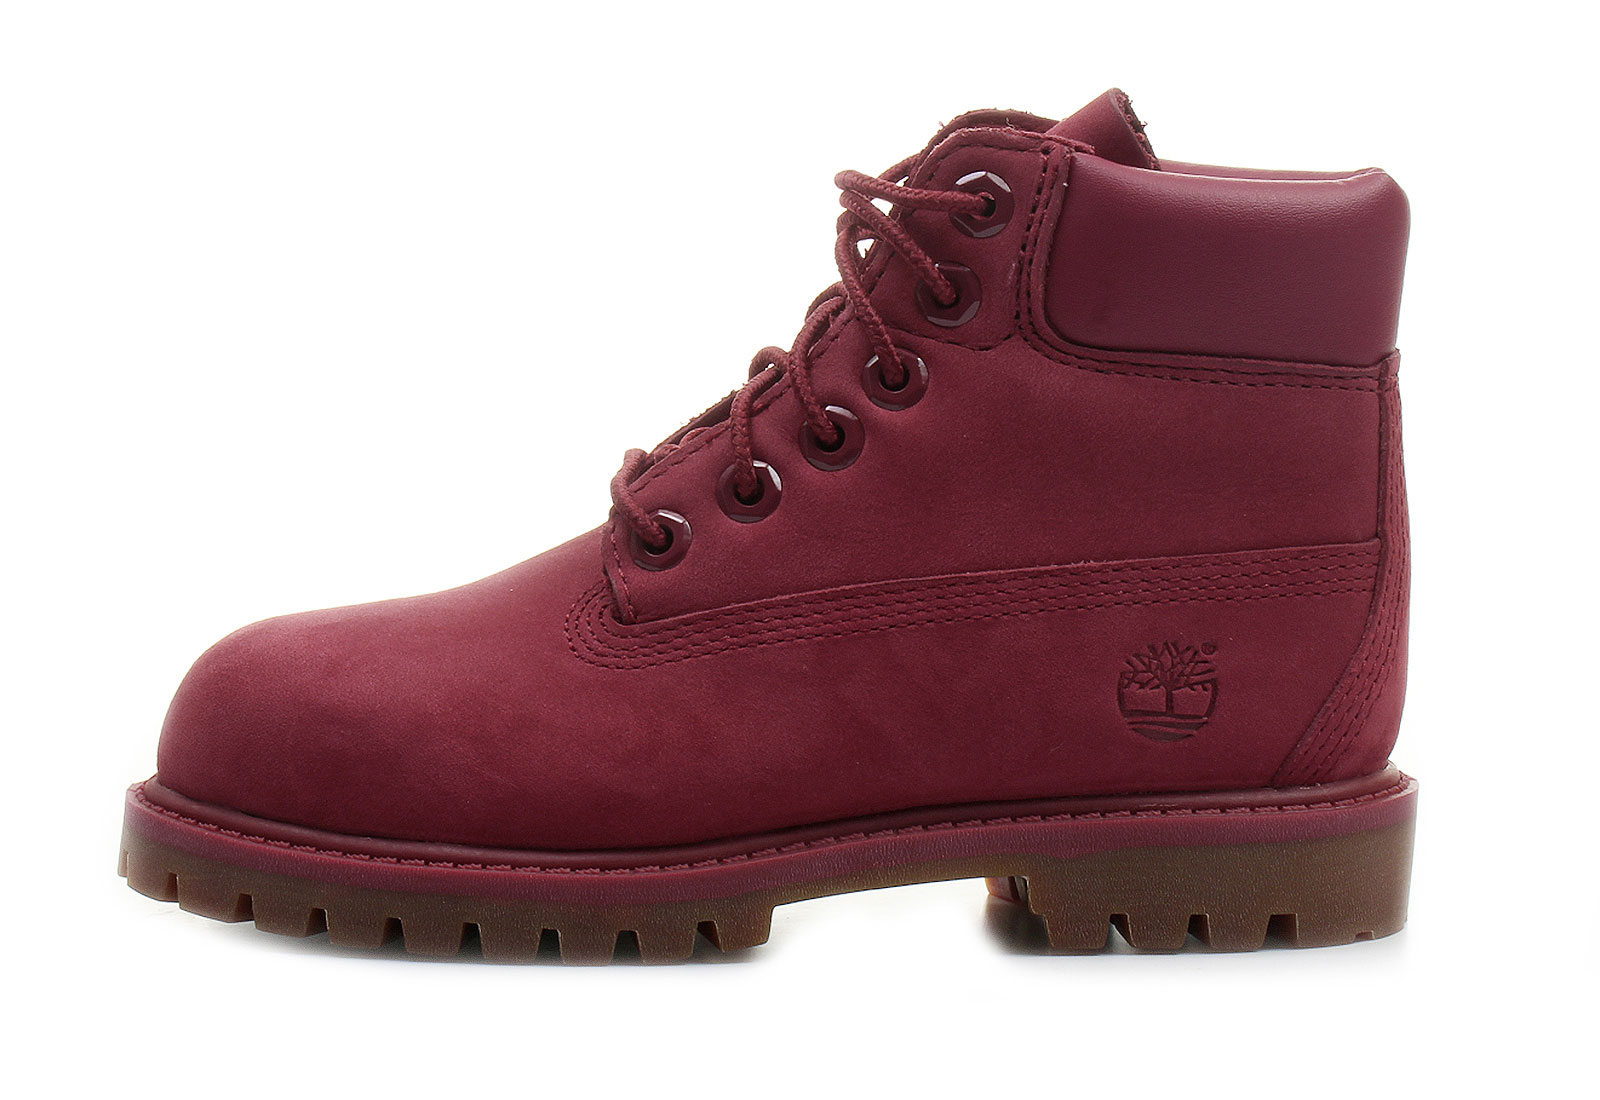 Timberland Boots - 6 Inch Prem Boot - a14un-red - Online ...